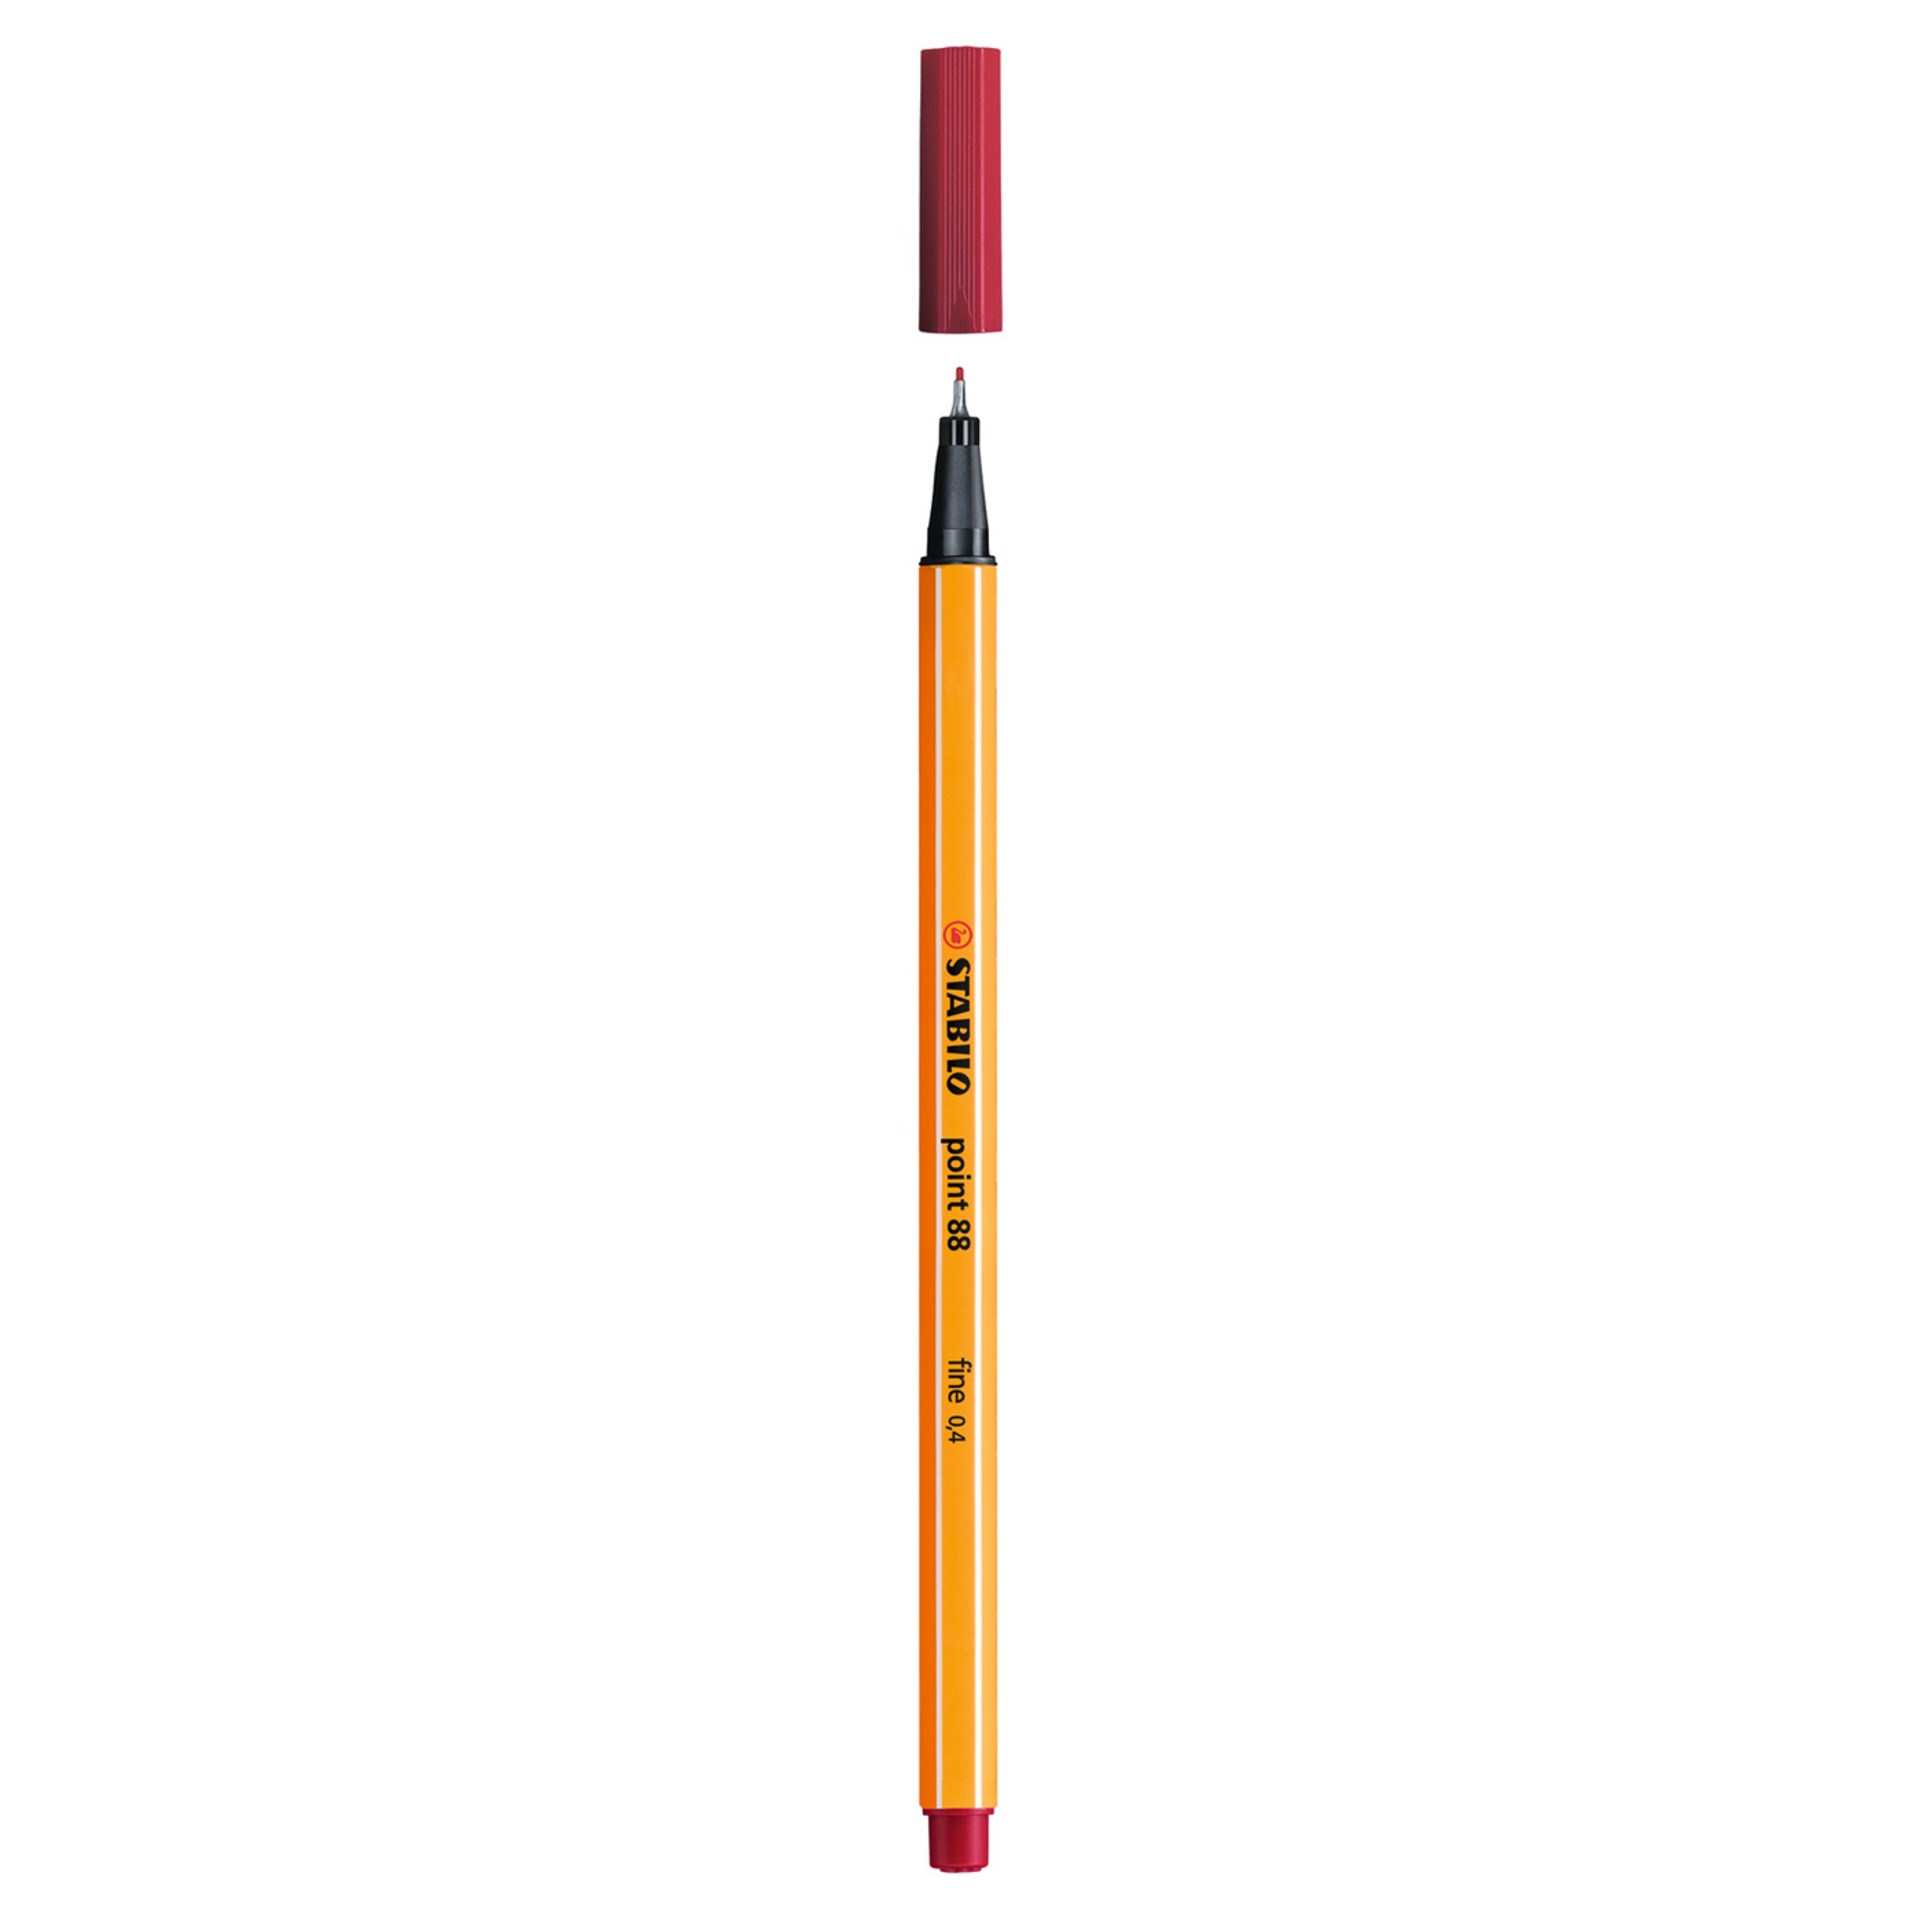 Stabilo Point 88 .4mm Fineliner Pen – Crimson